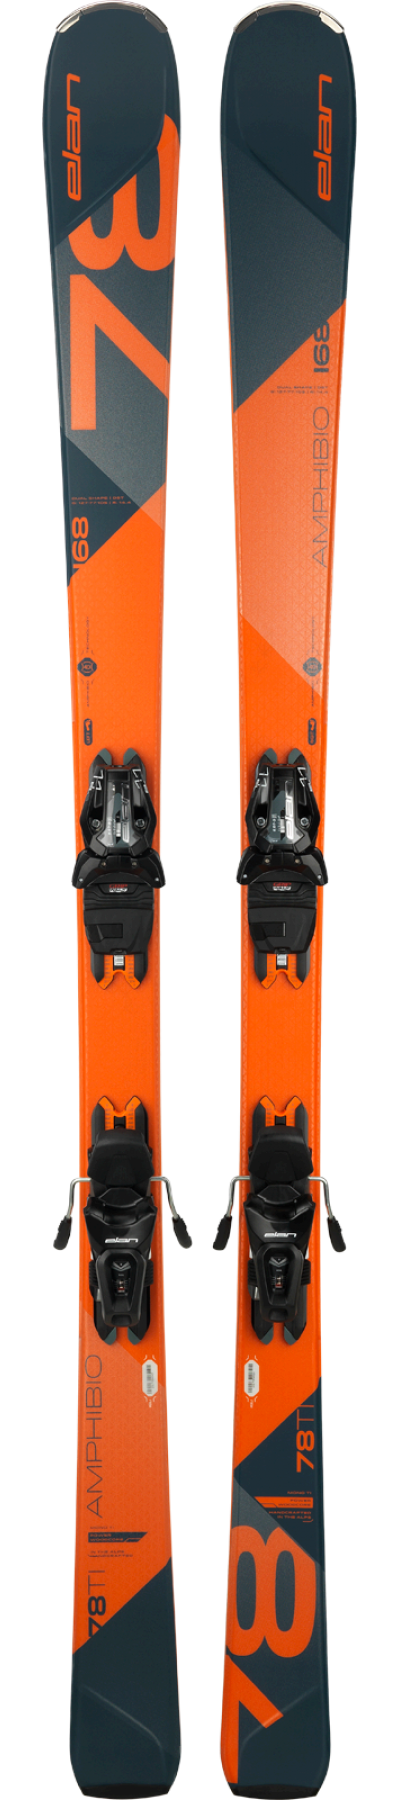 Image 0 of ELAN - AMPHIBIO 78 Ti PS SKIS, 160cm w/ELS11.O GRIPWALK BINDINGS - 2019